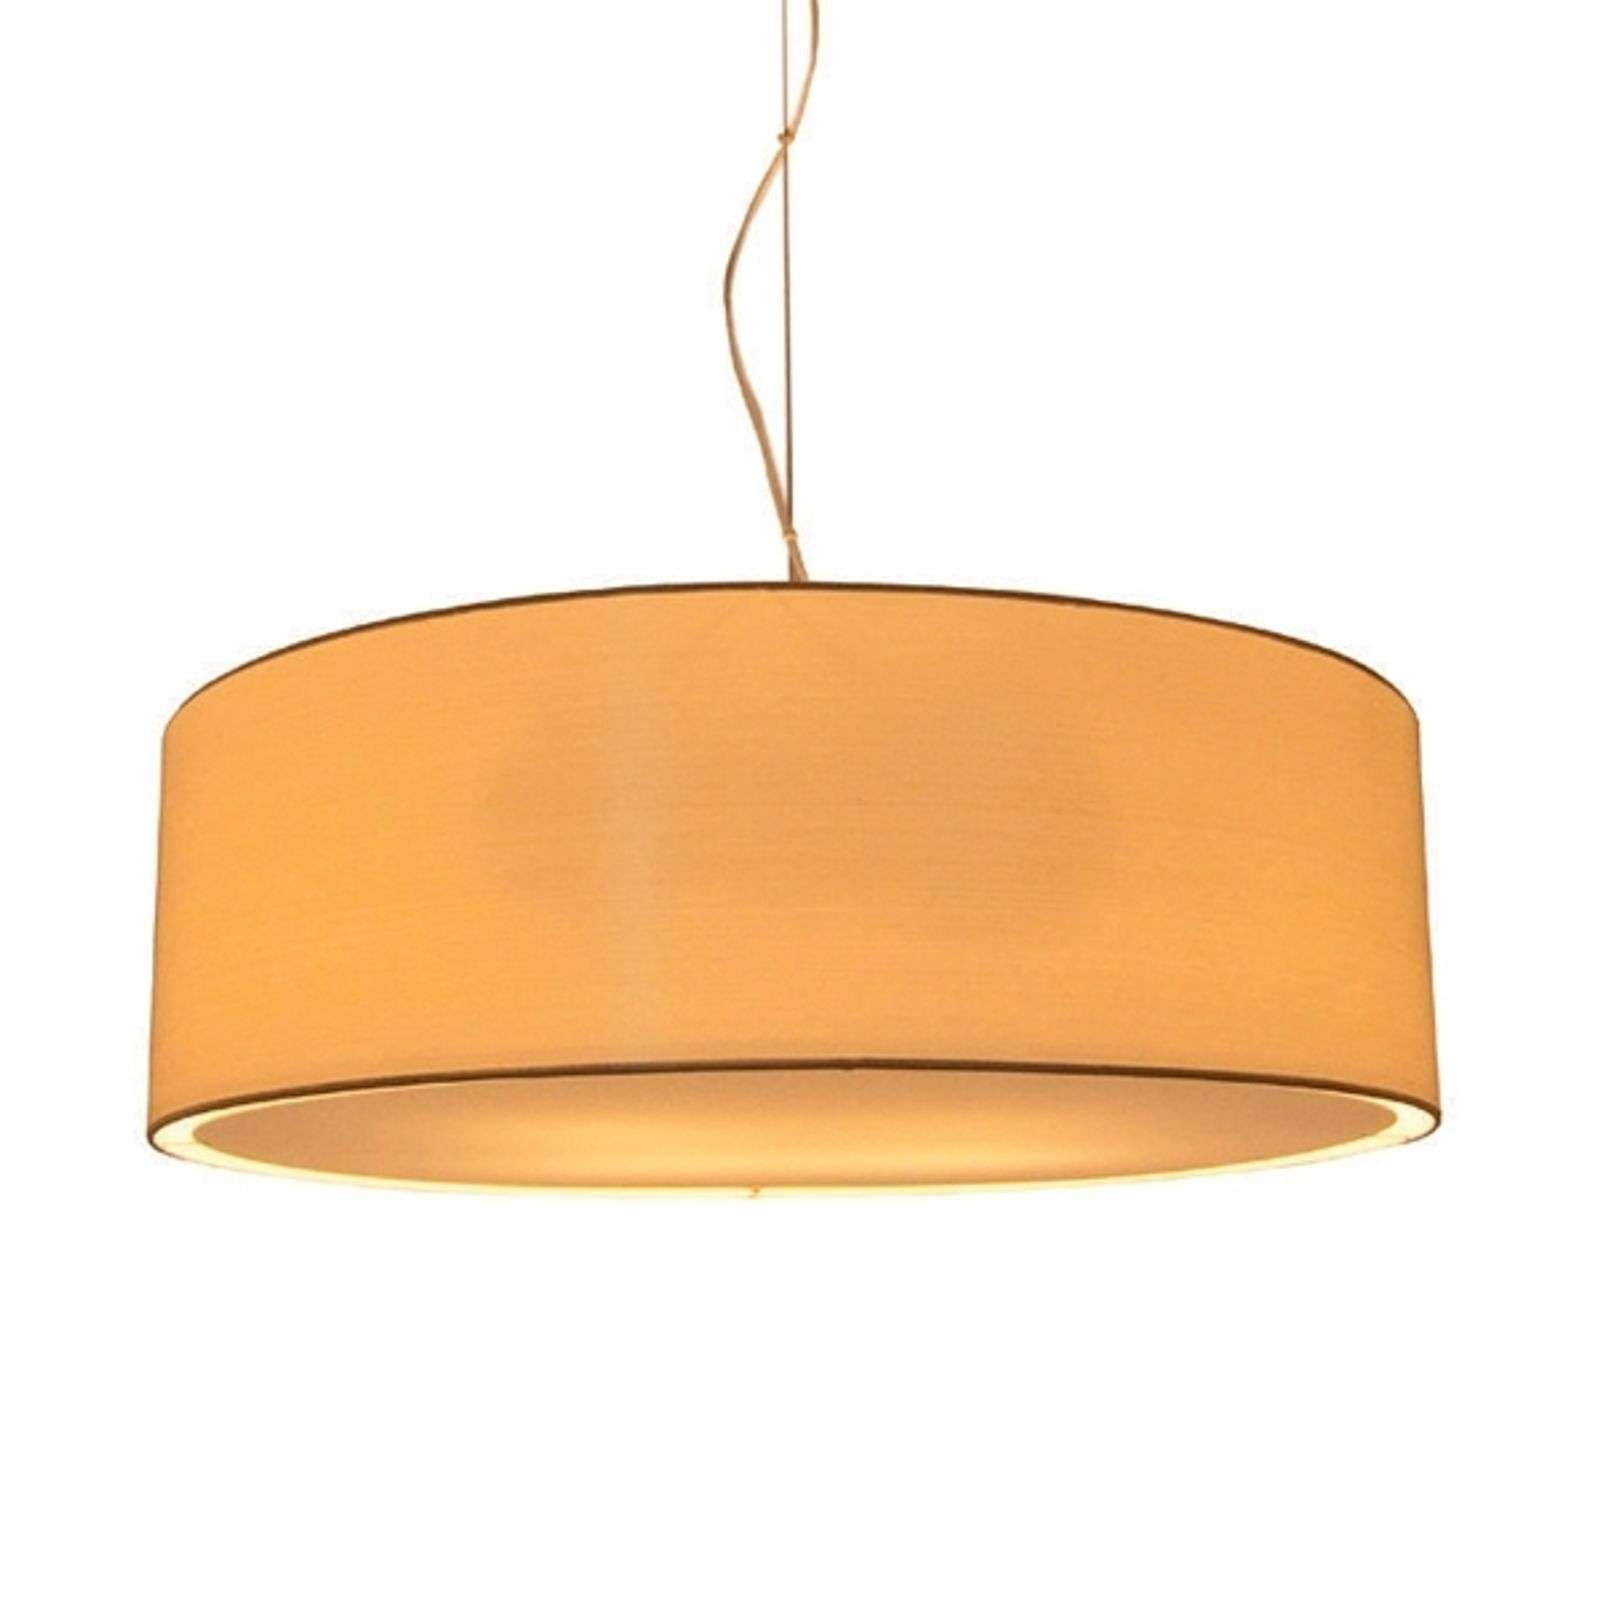 Suspension LIVING ELEGANT crème diamètre 80 cm